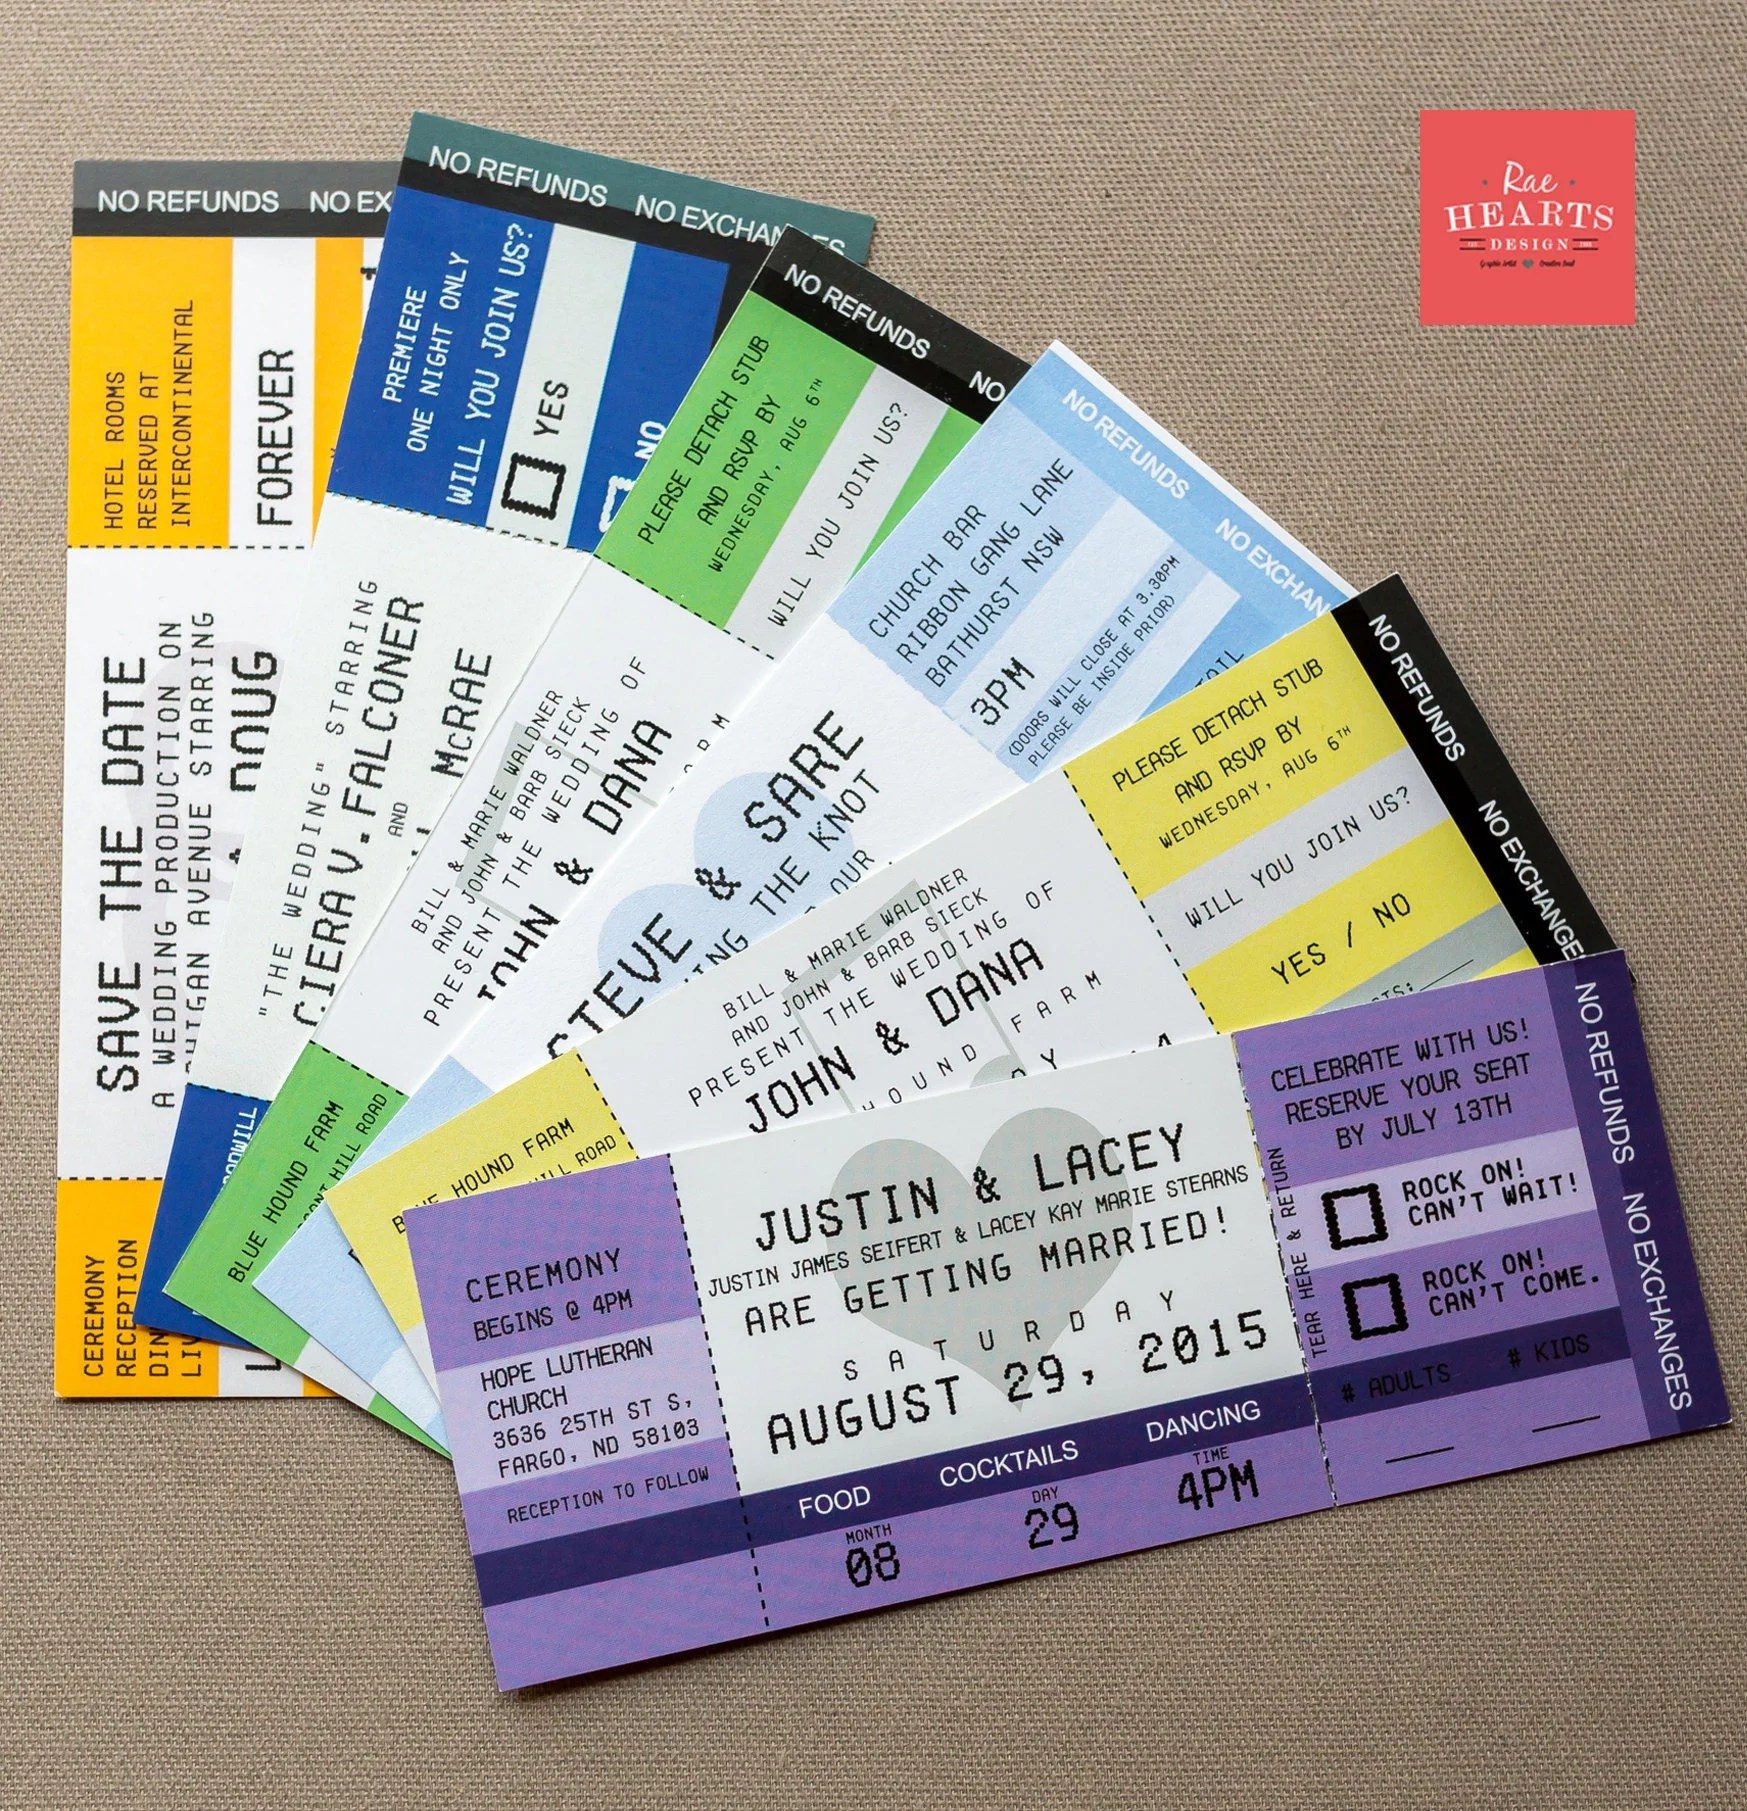 Concert Ticket Invitations Single Sided with Envelopes Etsy